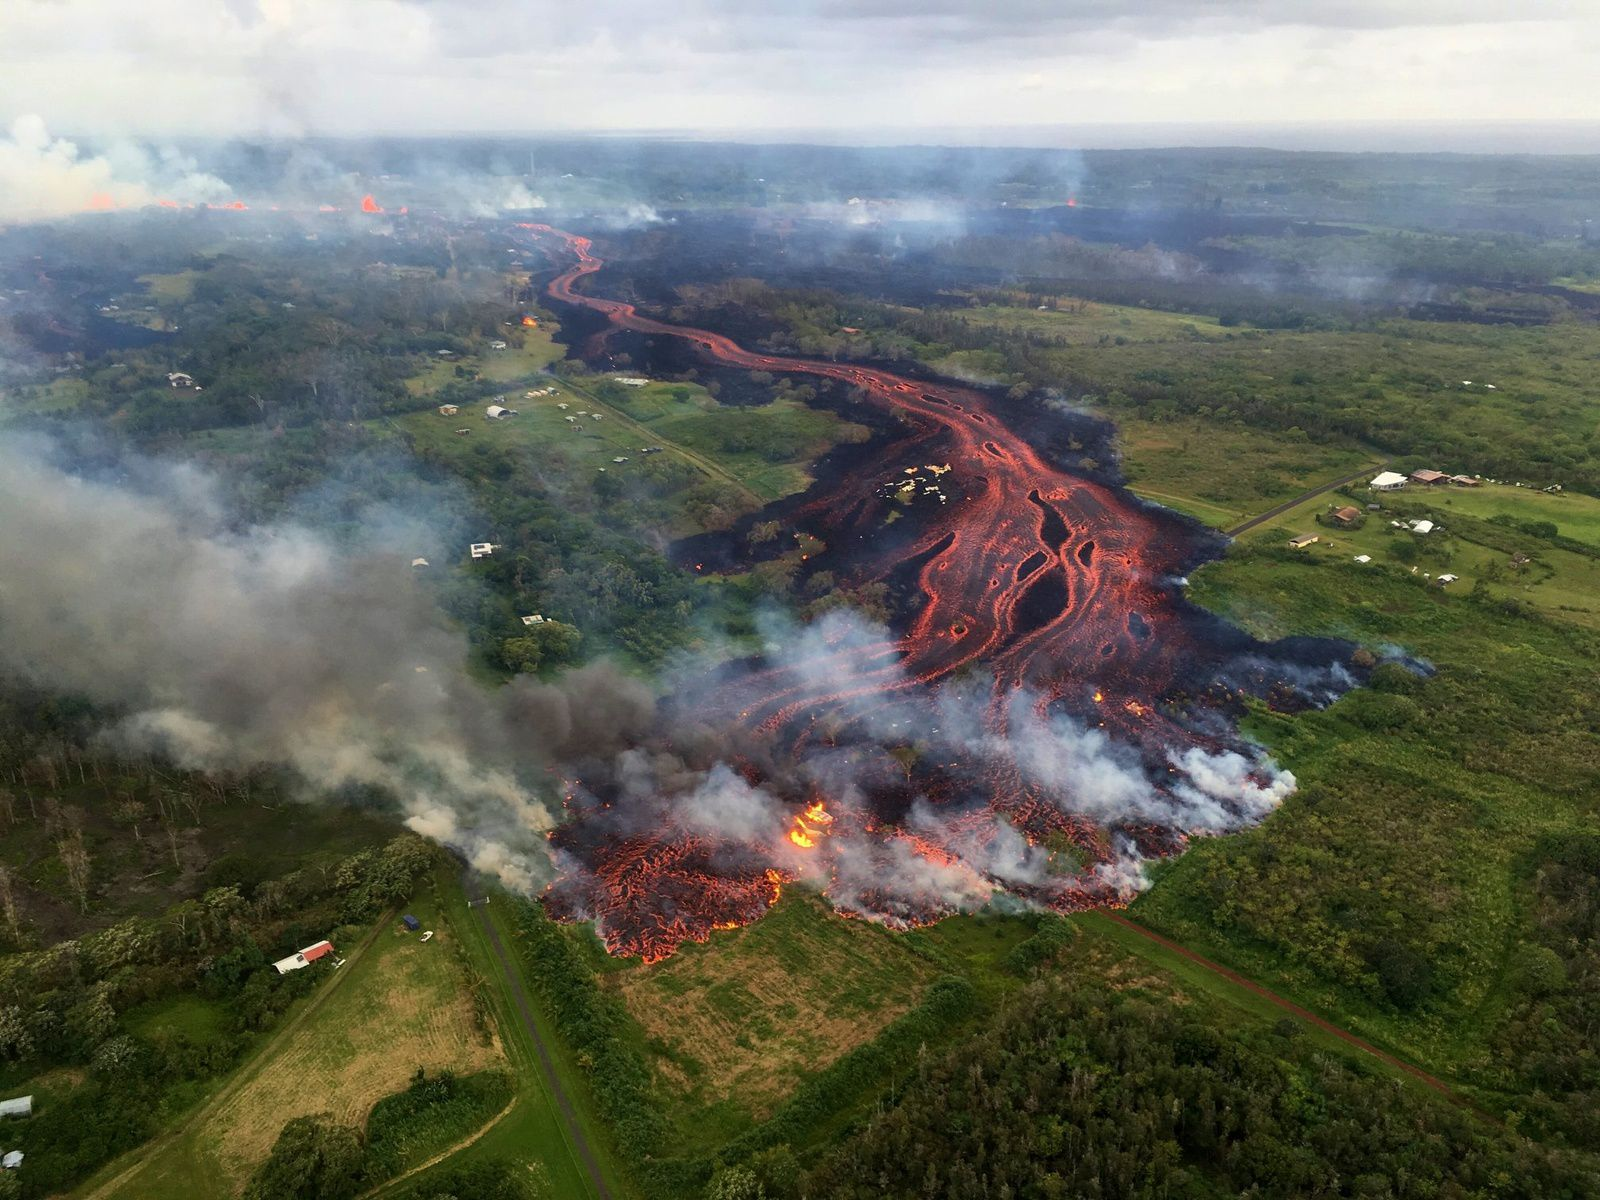 Kilauea - East rift zone - 19.05.2018 - Channeled lava flows, fed by a line of low fountains, are heading towards the ESO - USGS photo